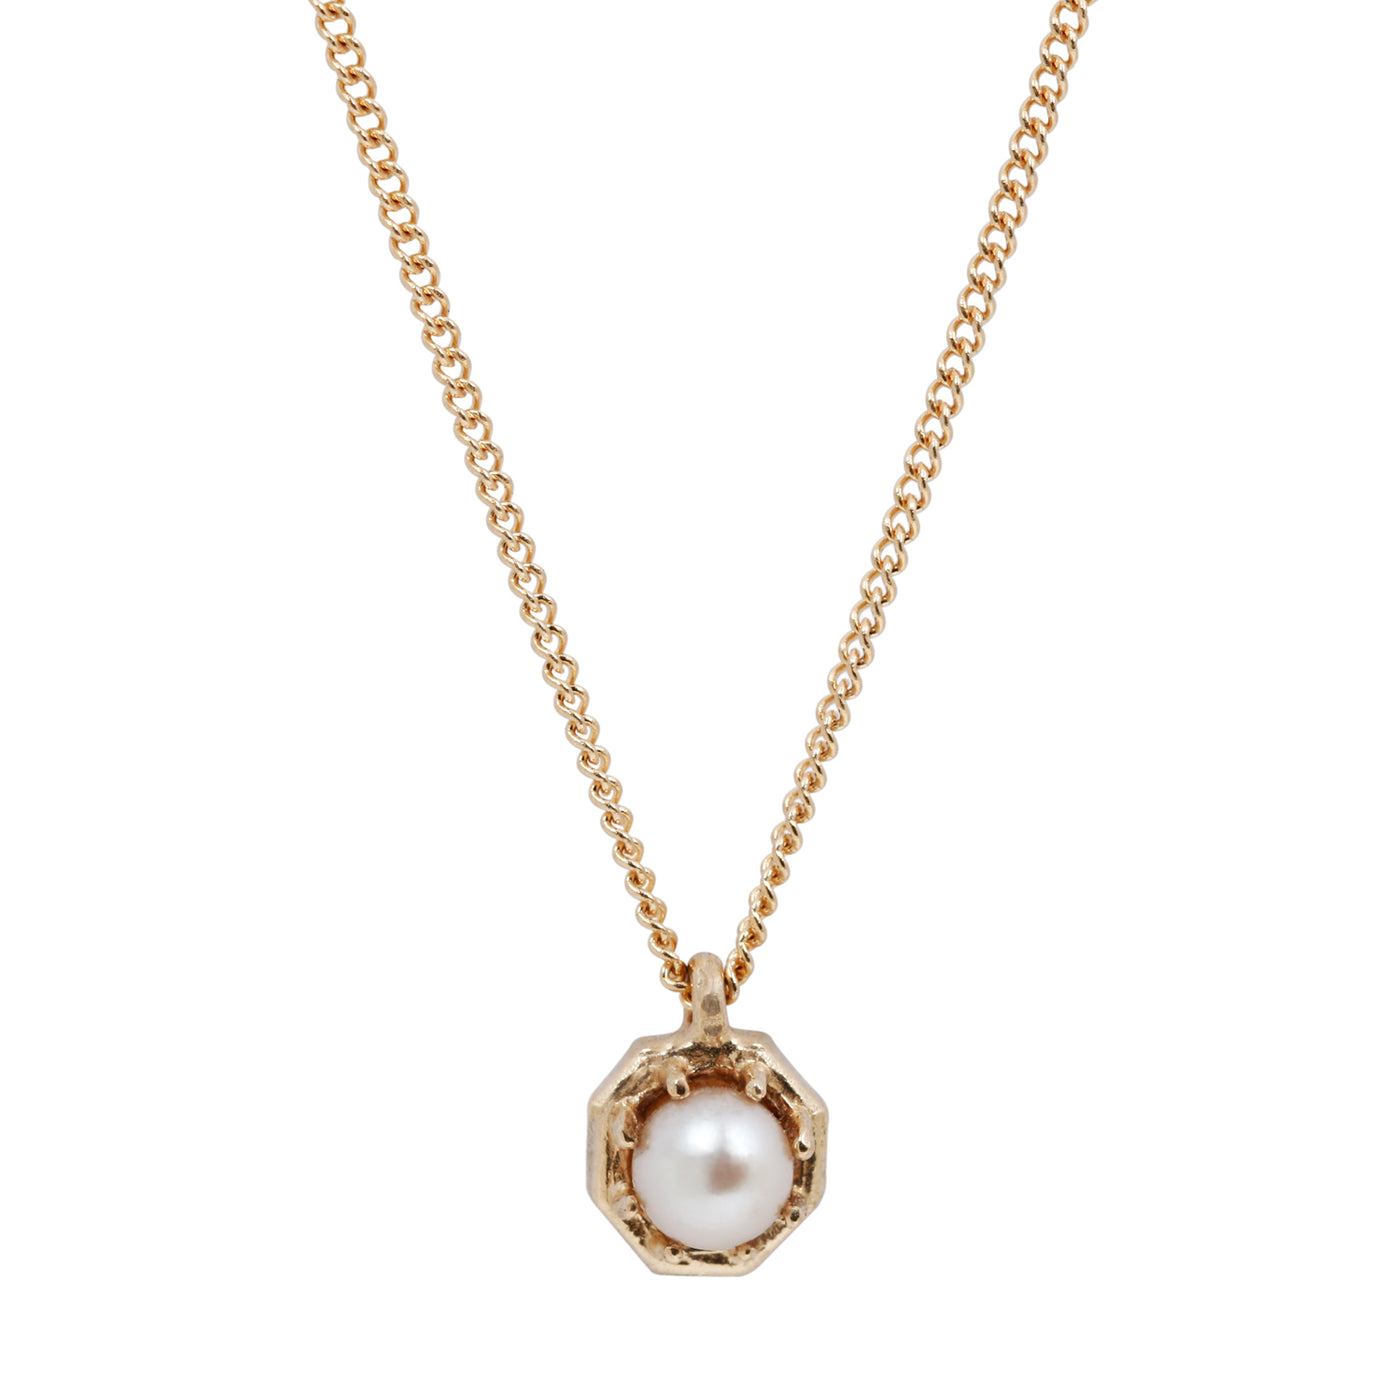 Lauren Wolf Small Akoya Pearl Necklace